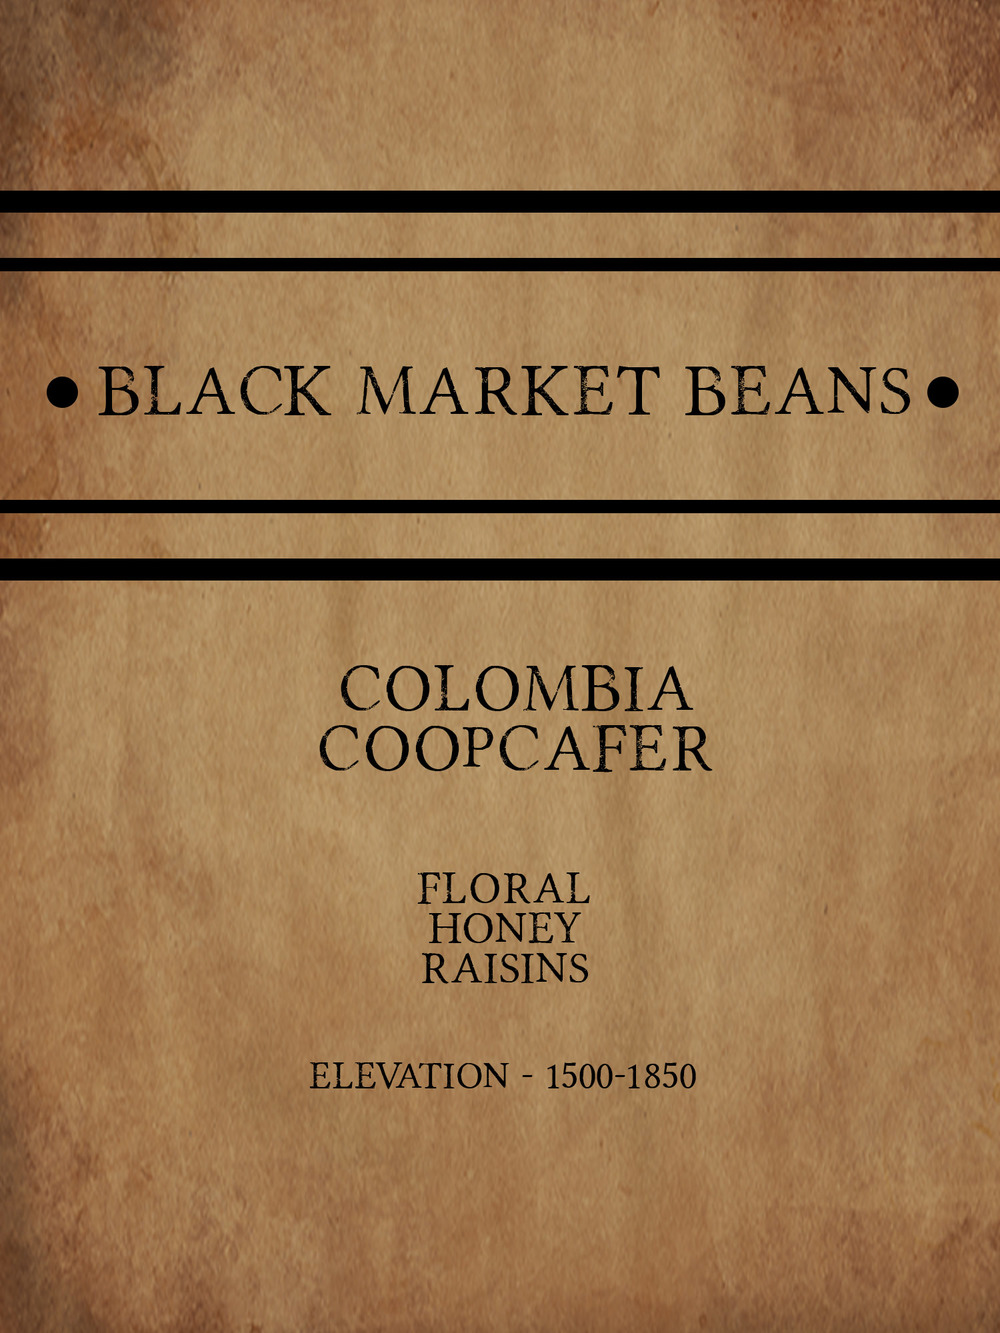 coffee_columbia_coopcafer.jpg